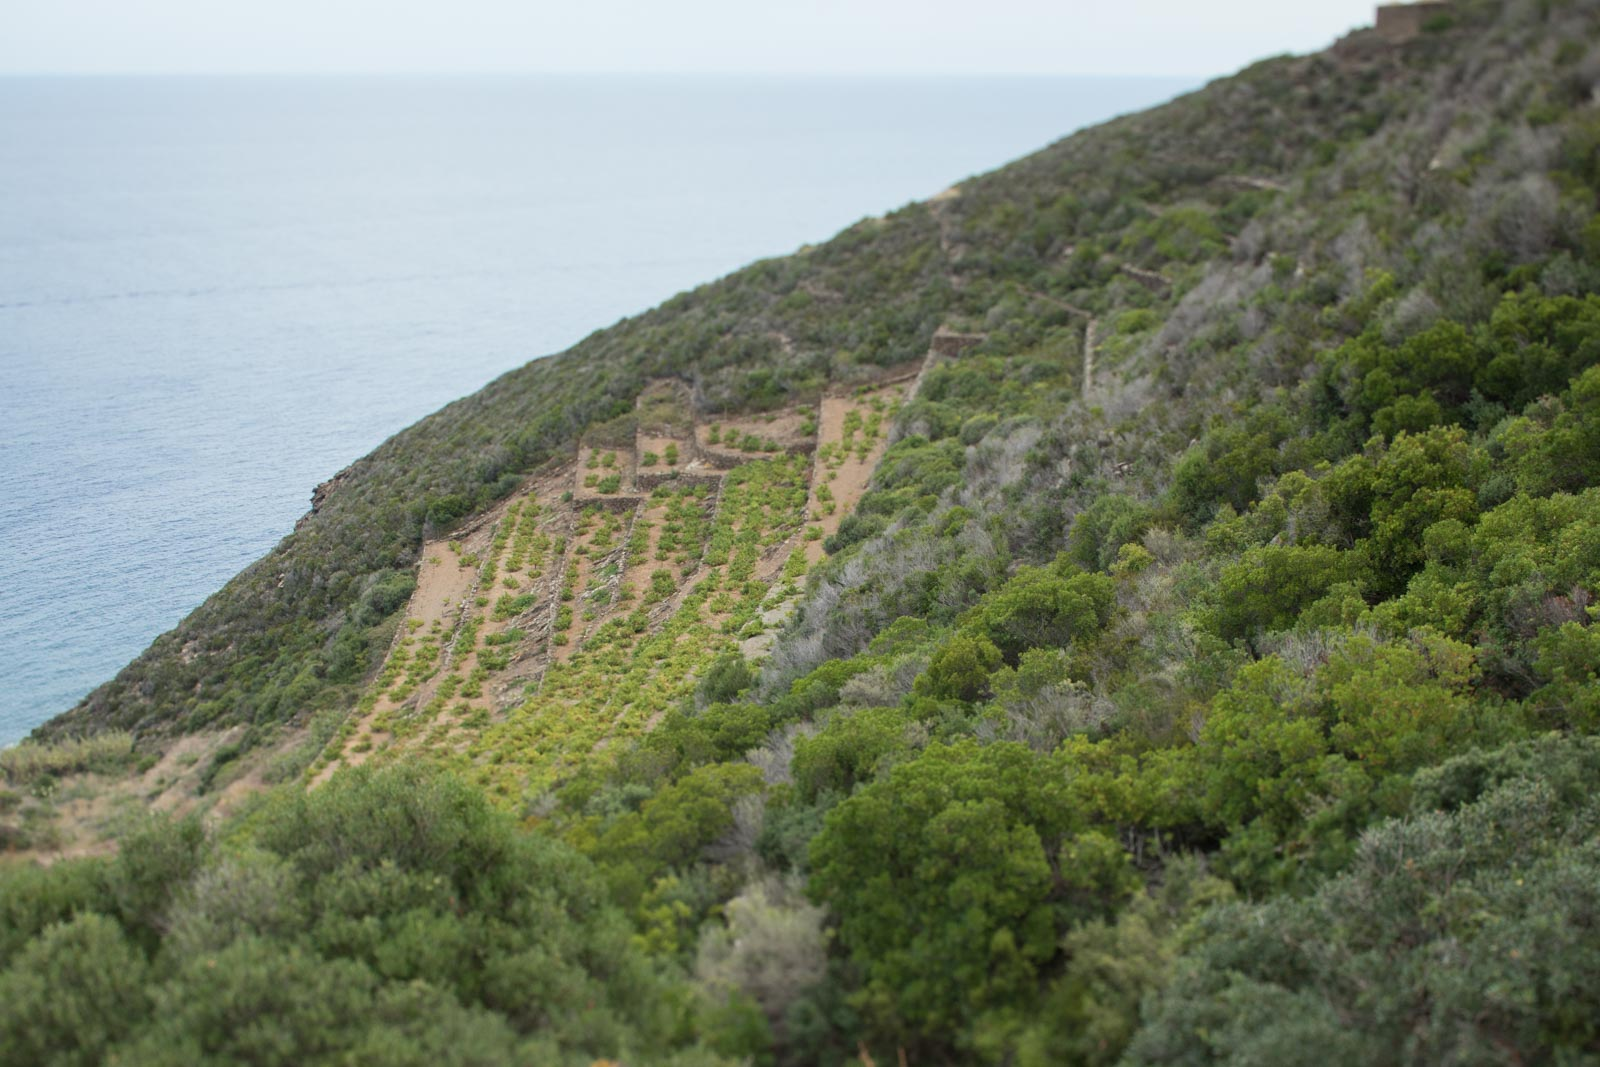 One of the seaside terraced vineyards on Pantelleria. ©Kevin Day/Opening a Bottle